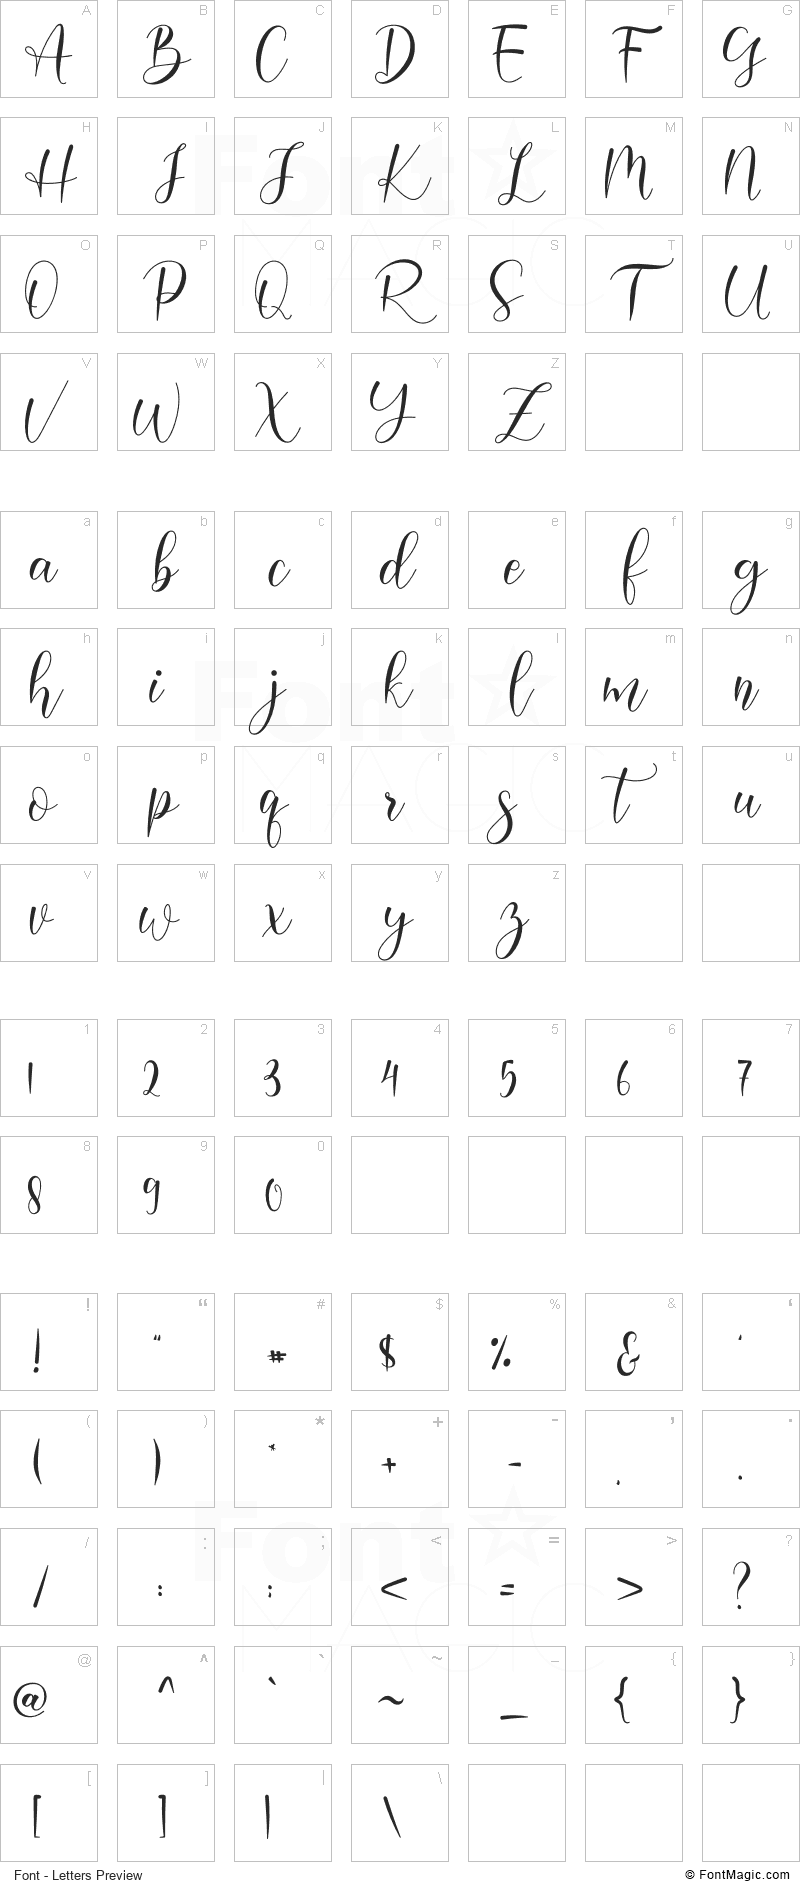 Harelia Font - All Latters Preview Chart